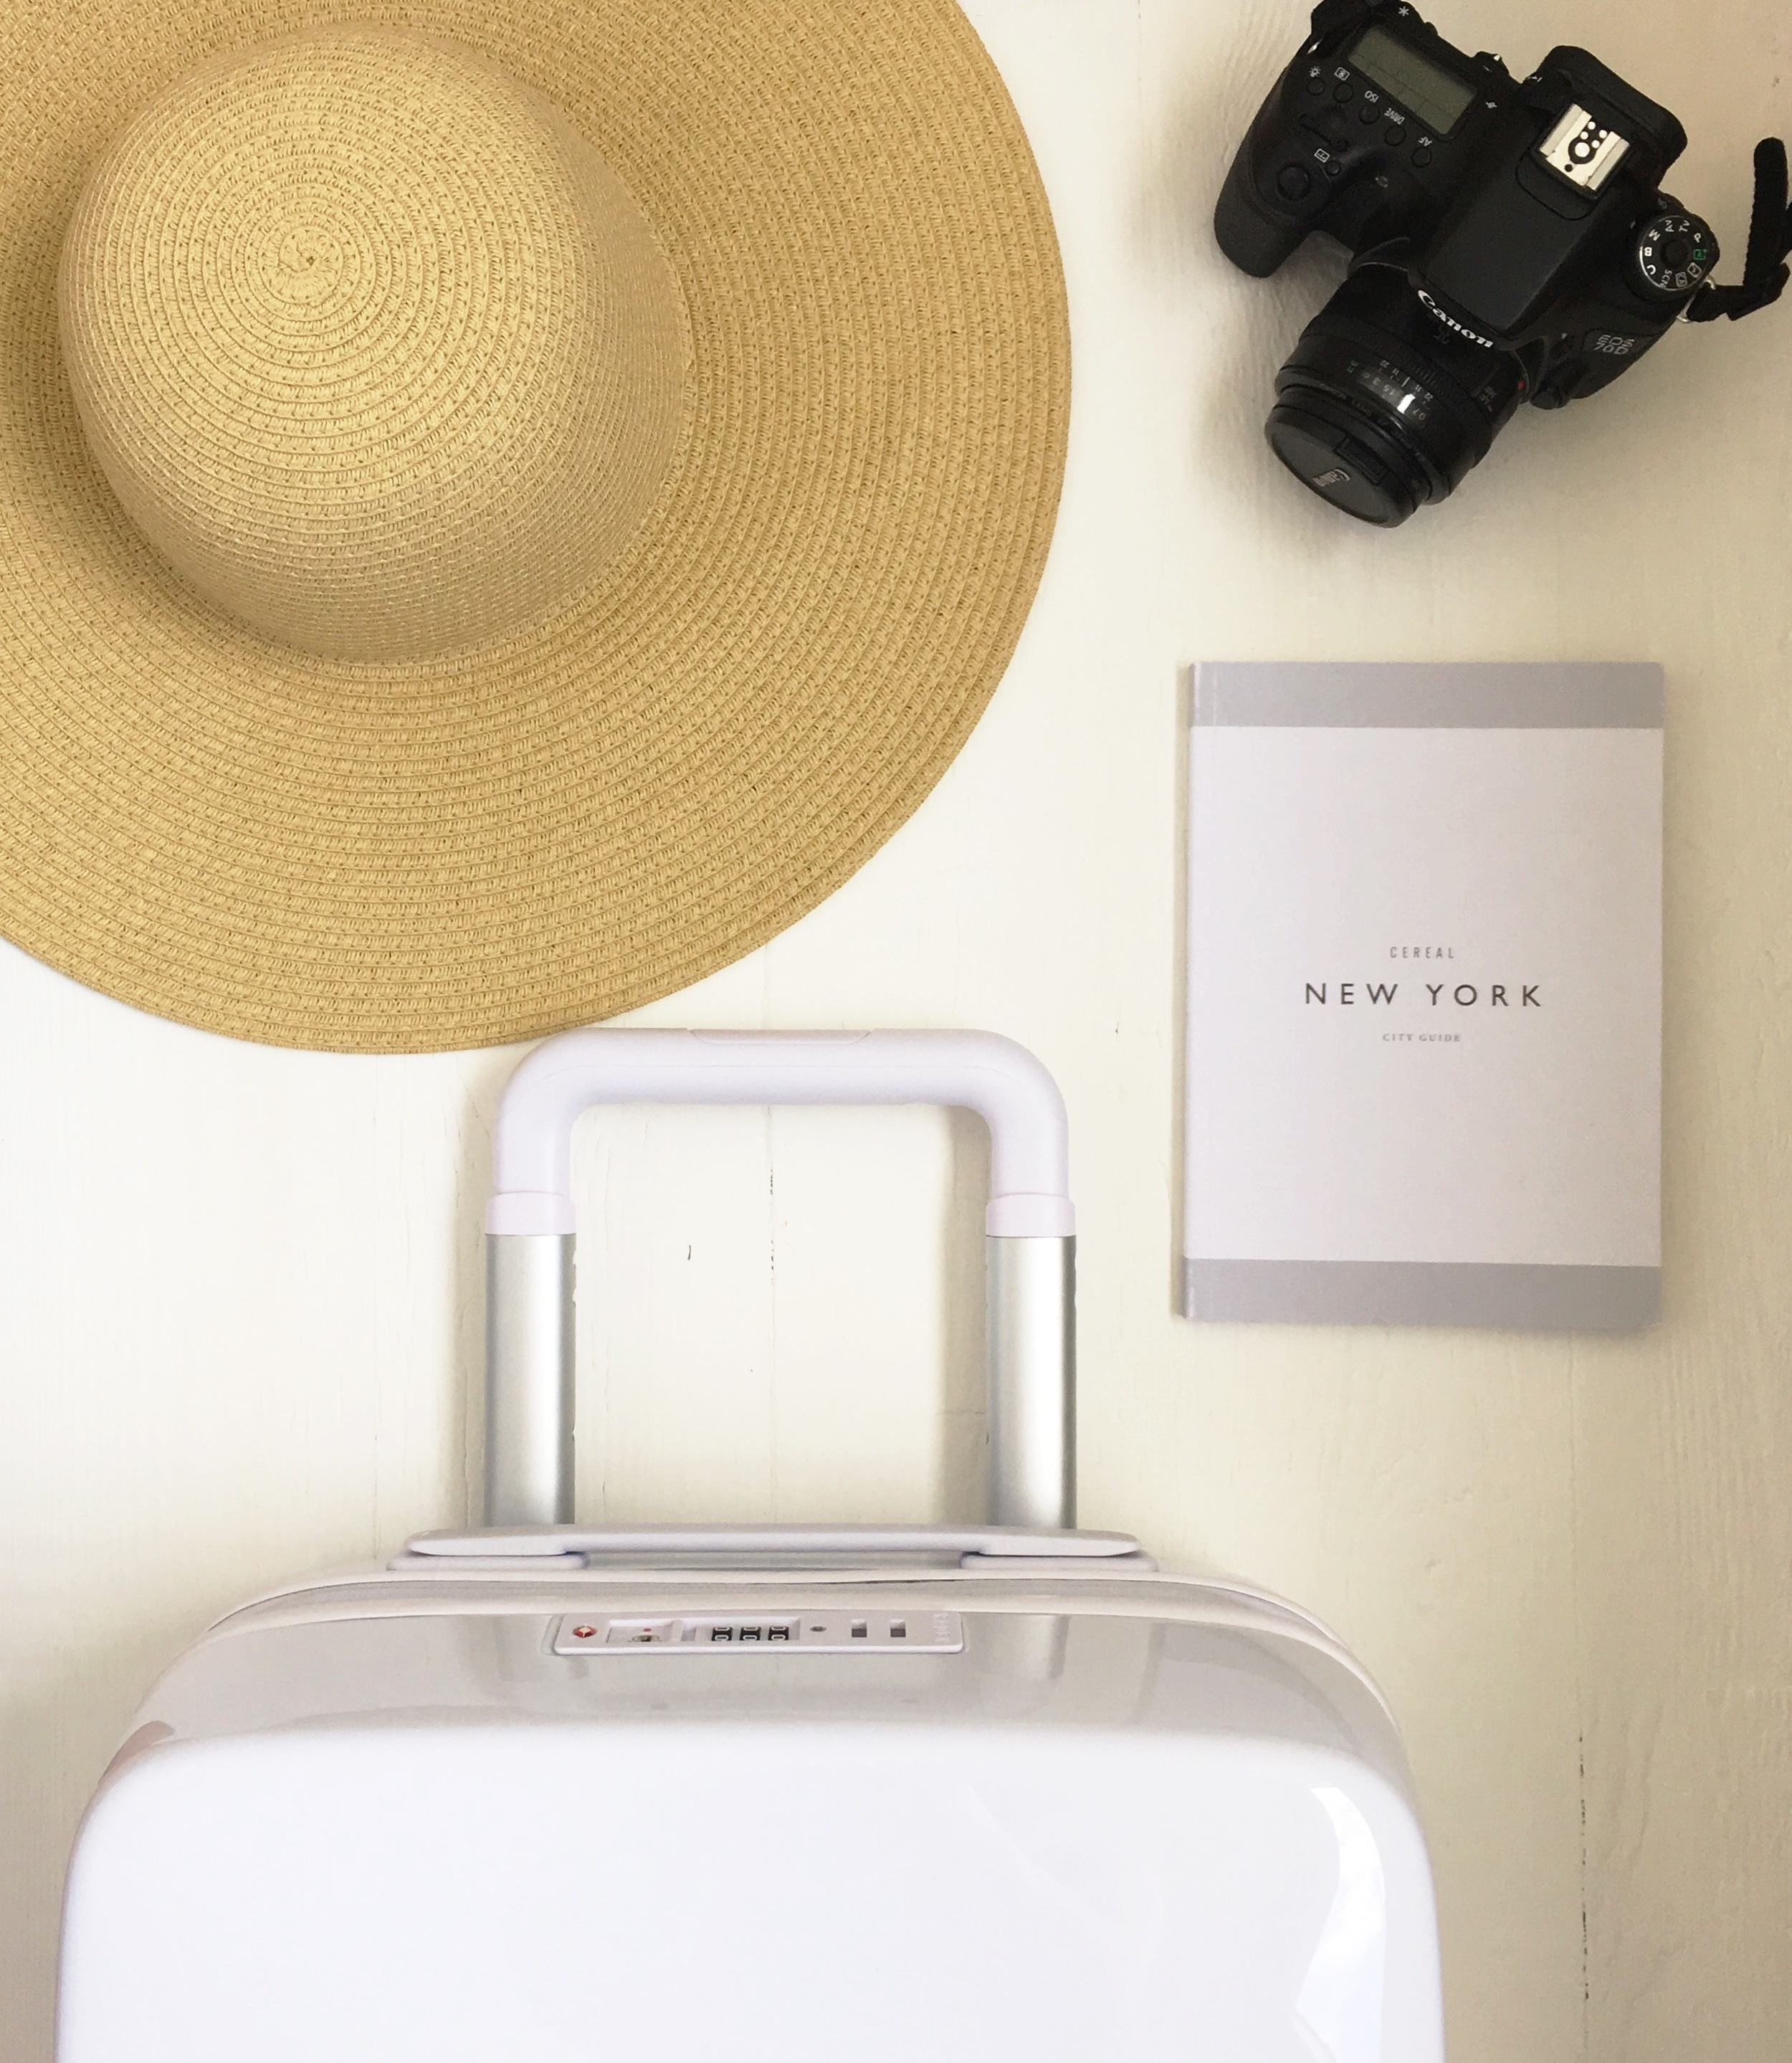 Suitcase by Raden